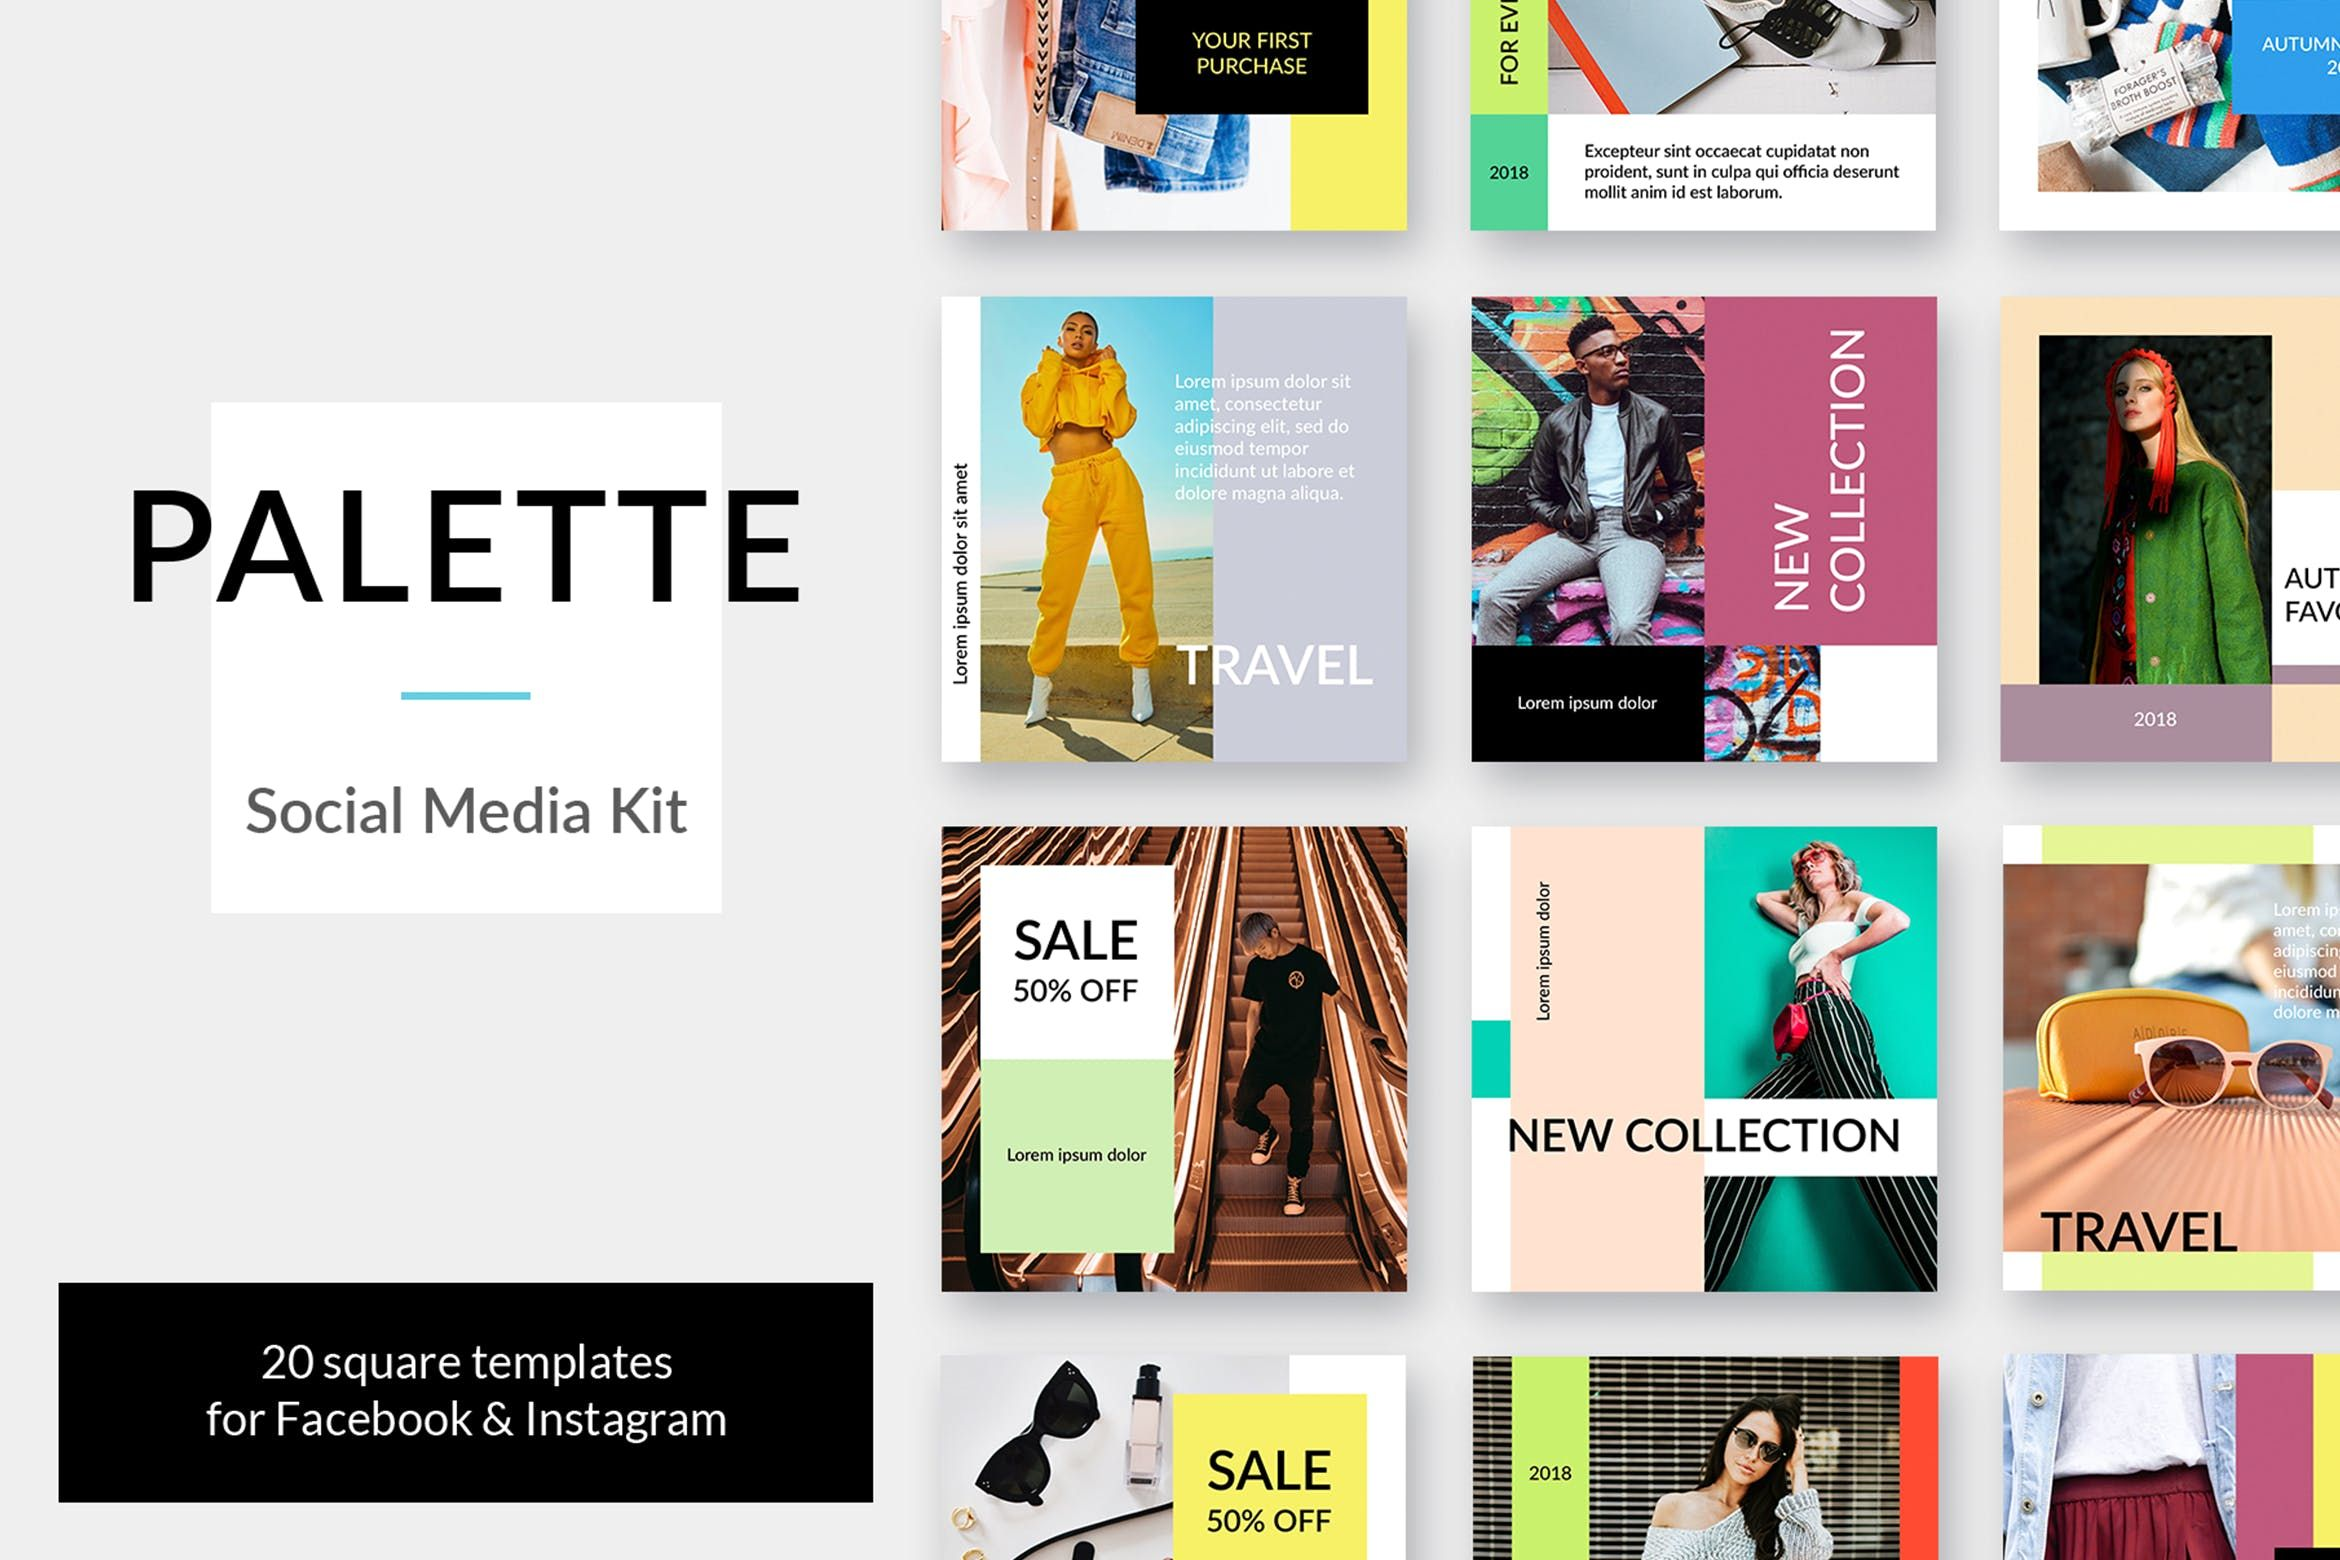 Palette Social Media Kit Instagram Facebook Pinterest Blog Smm Social Media Fashion Twitter M Media Kit Social Media Branding Social Media